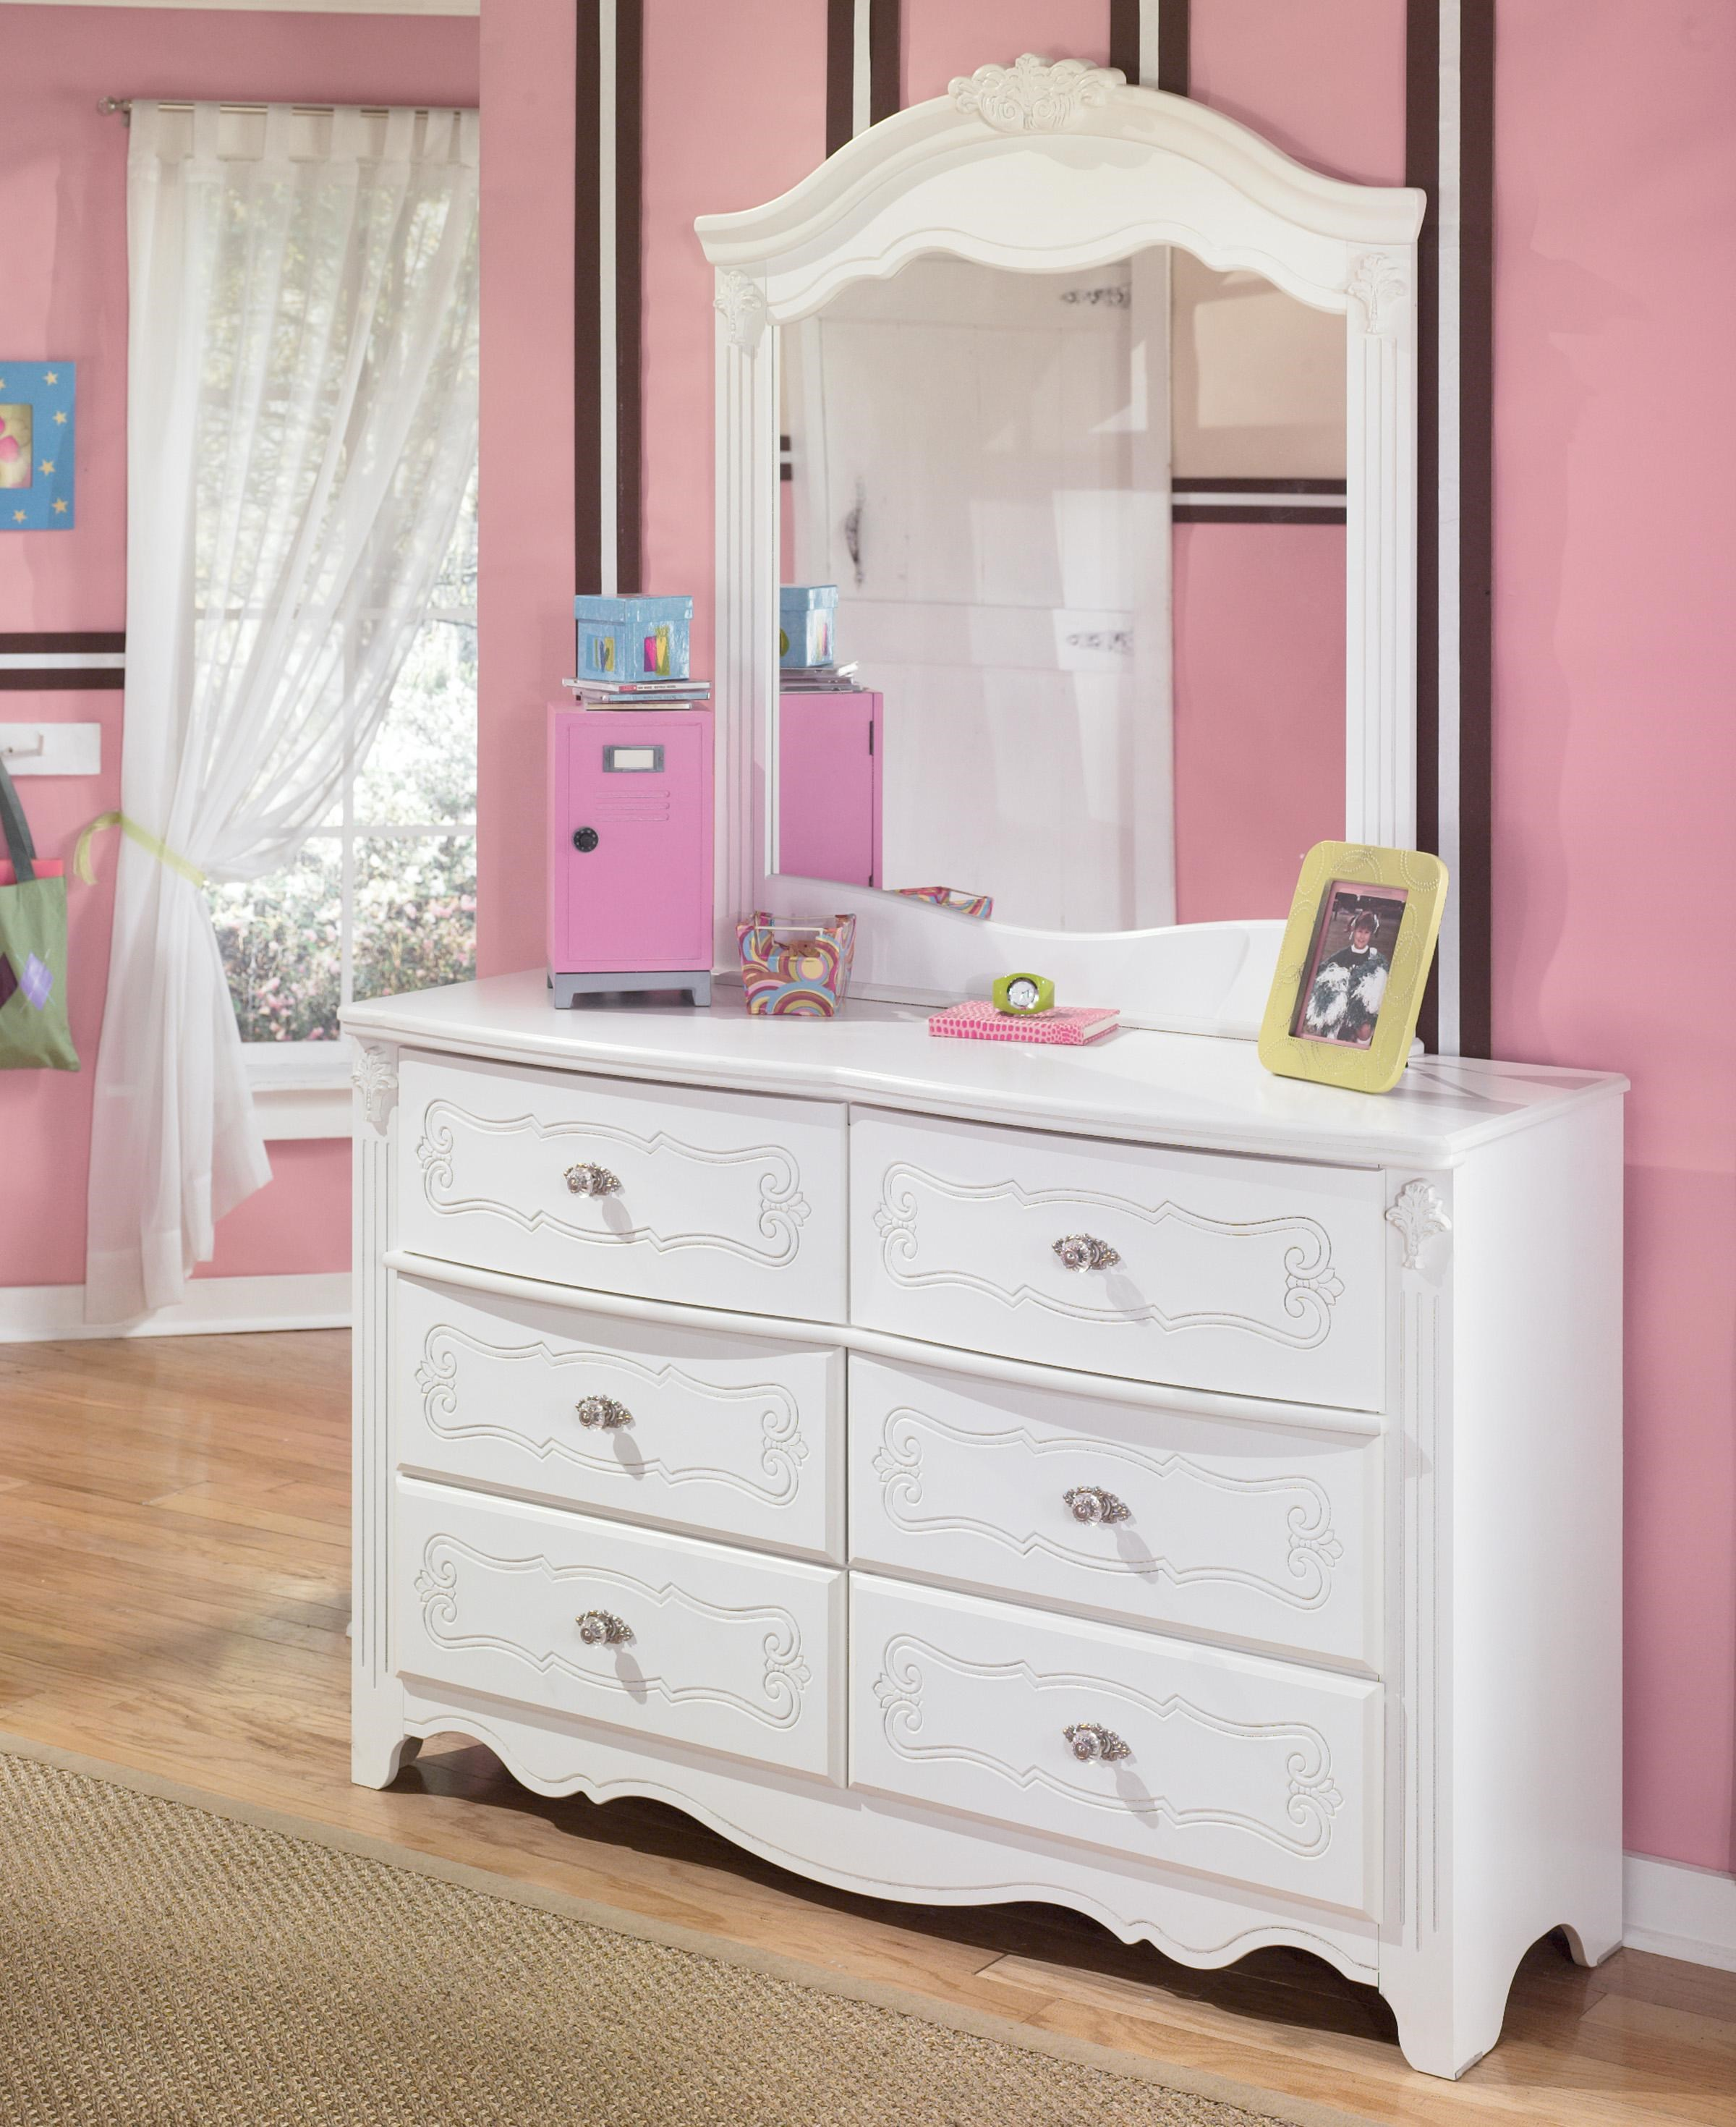 Signature Design By Ashley Exquisite Country Style 6 Drawer Dresser And Landscape Mirror Wayside Furniture Dresser Mirror Sets